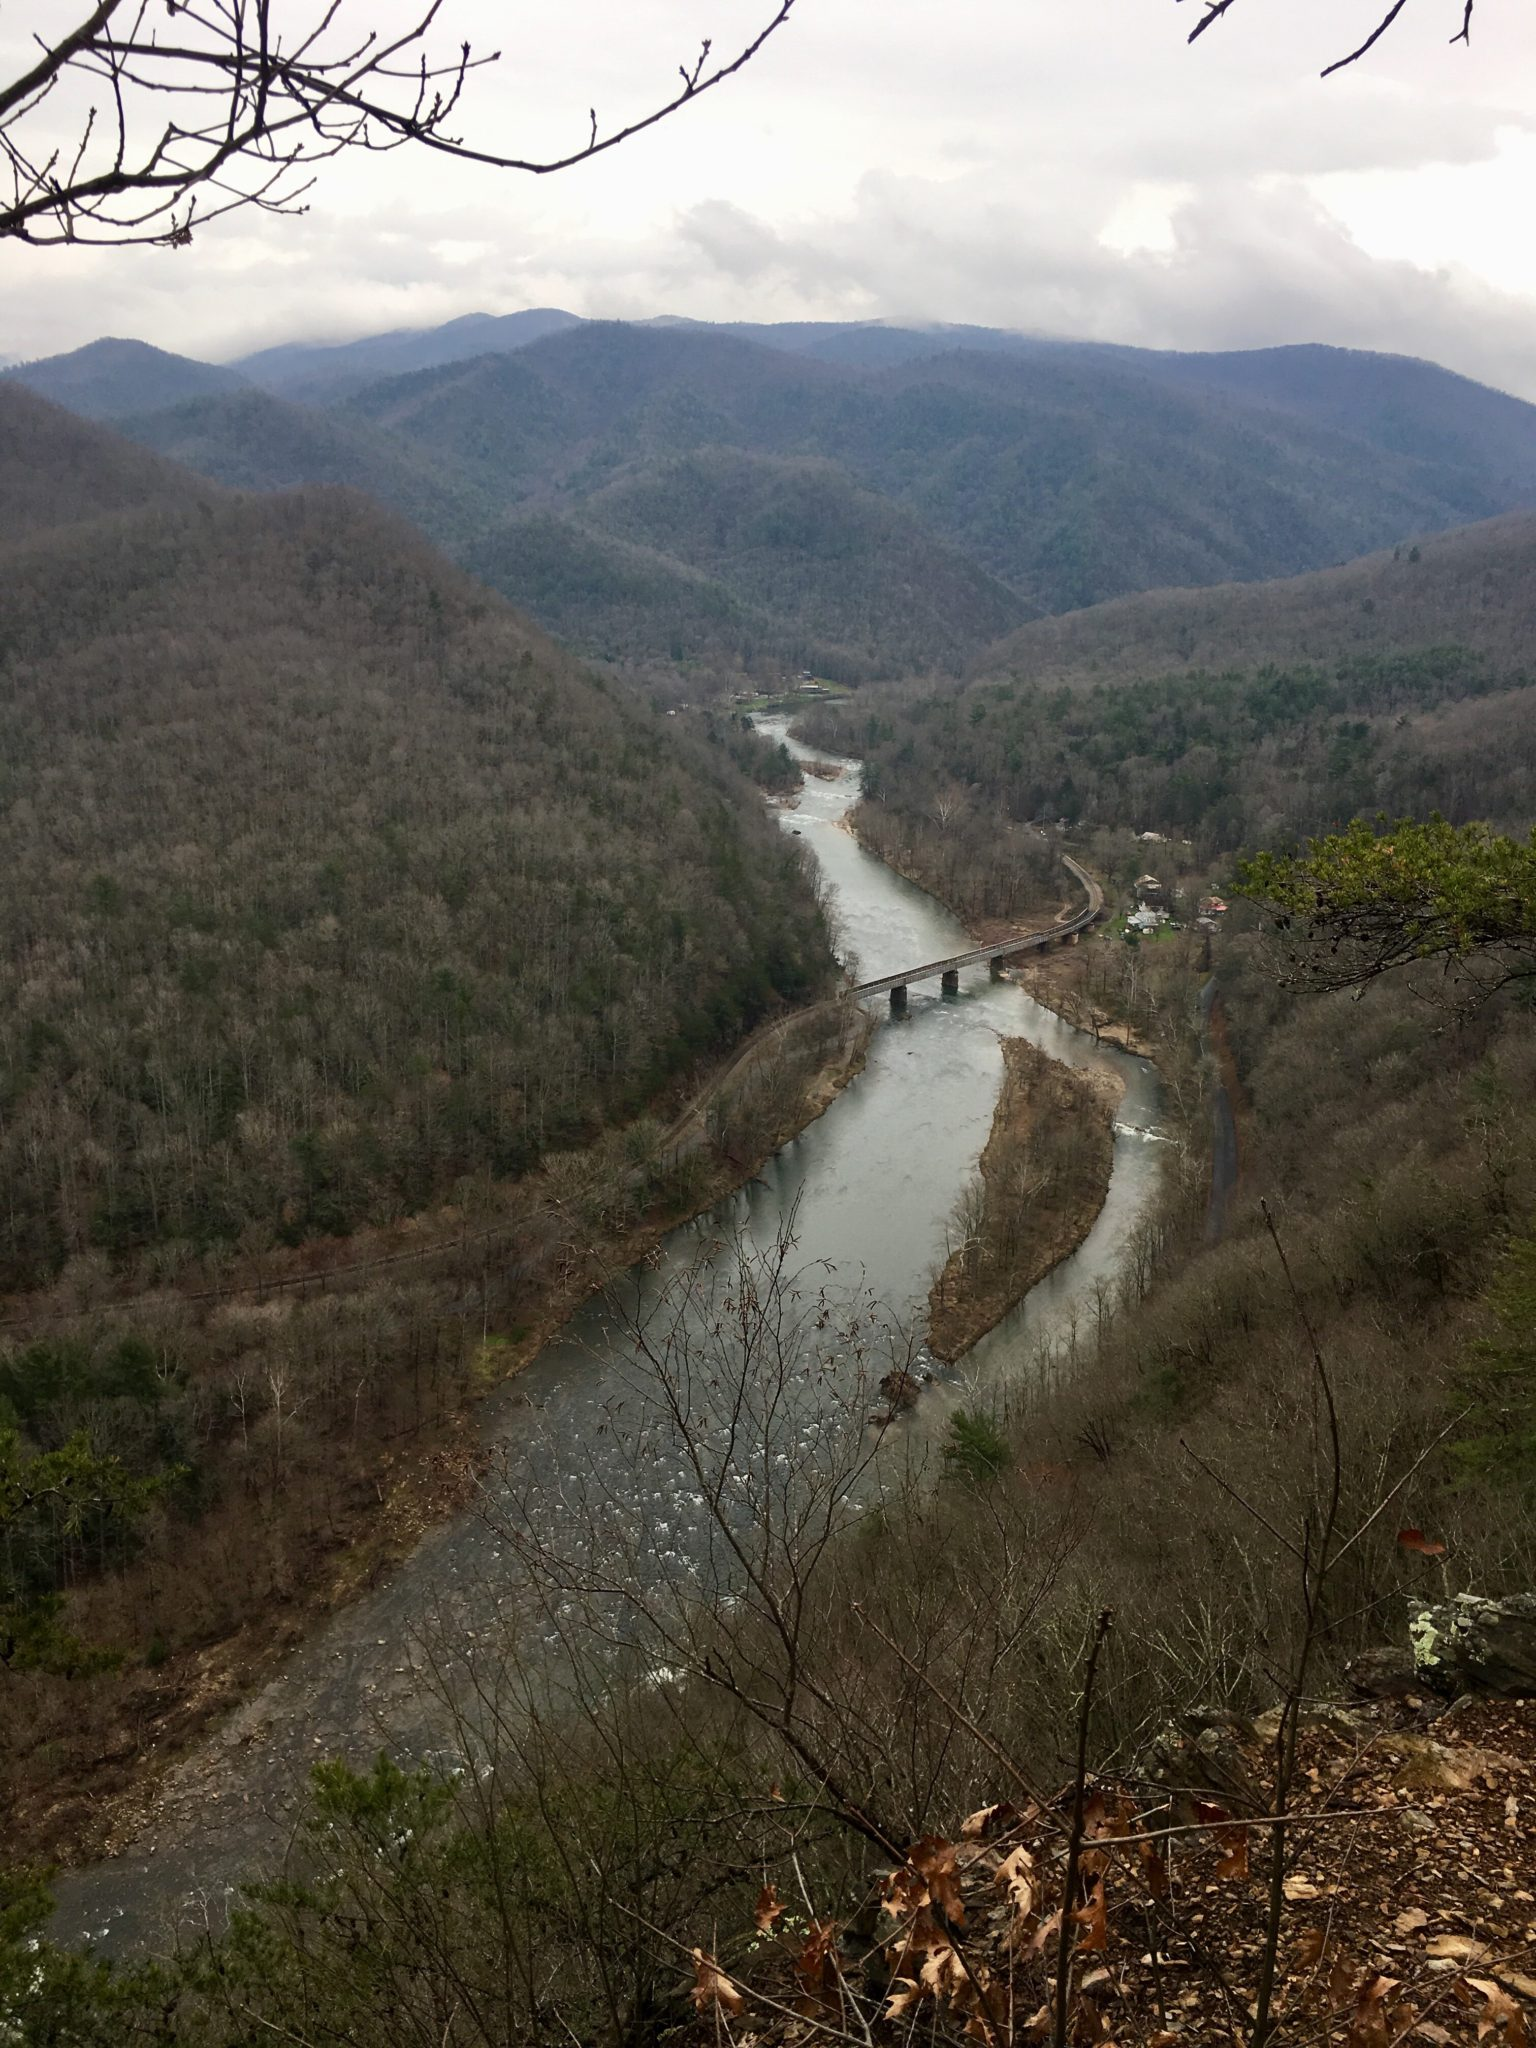 Hiking down to the town of Erwin, TN